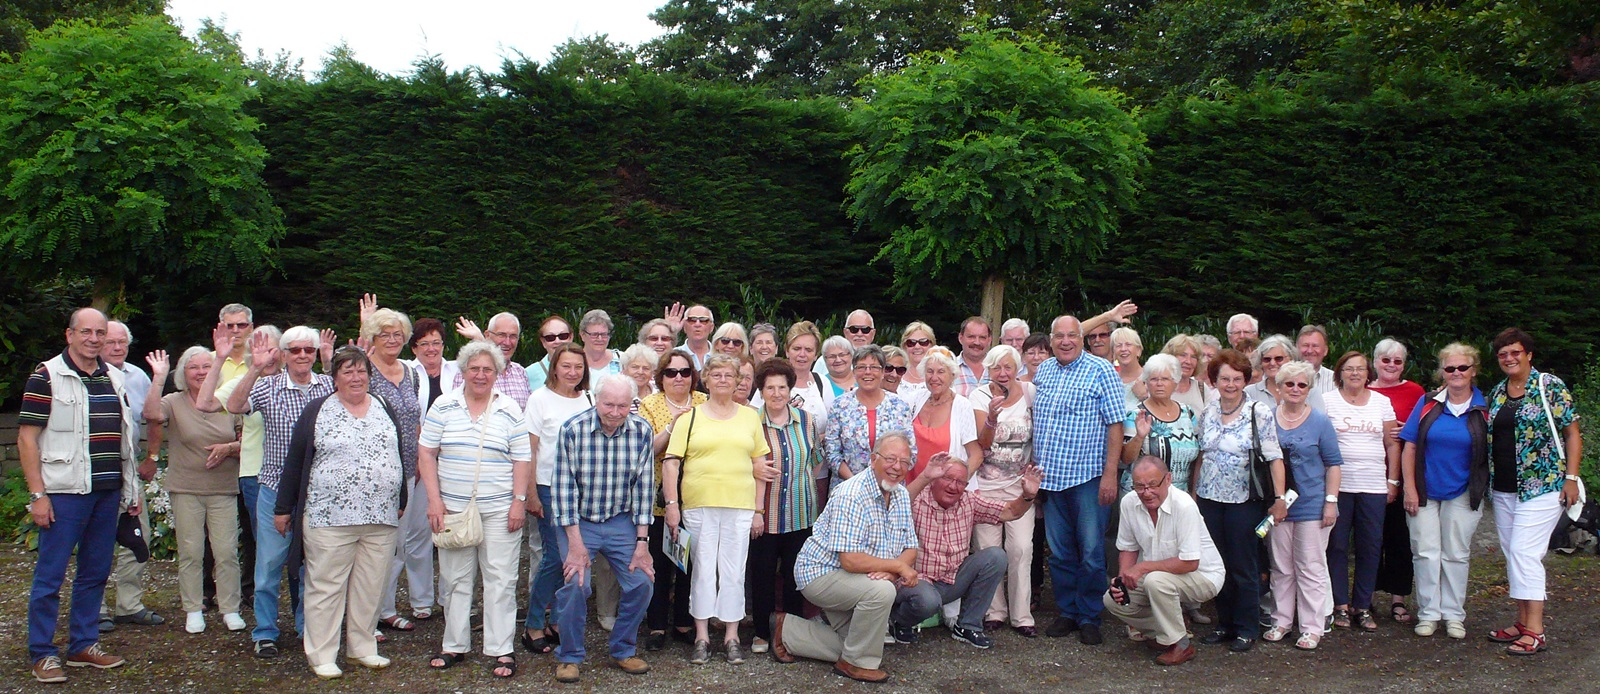 Giethoorn Tolle Truppe in Giethorn